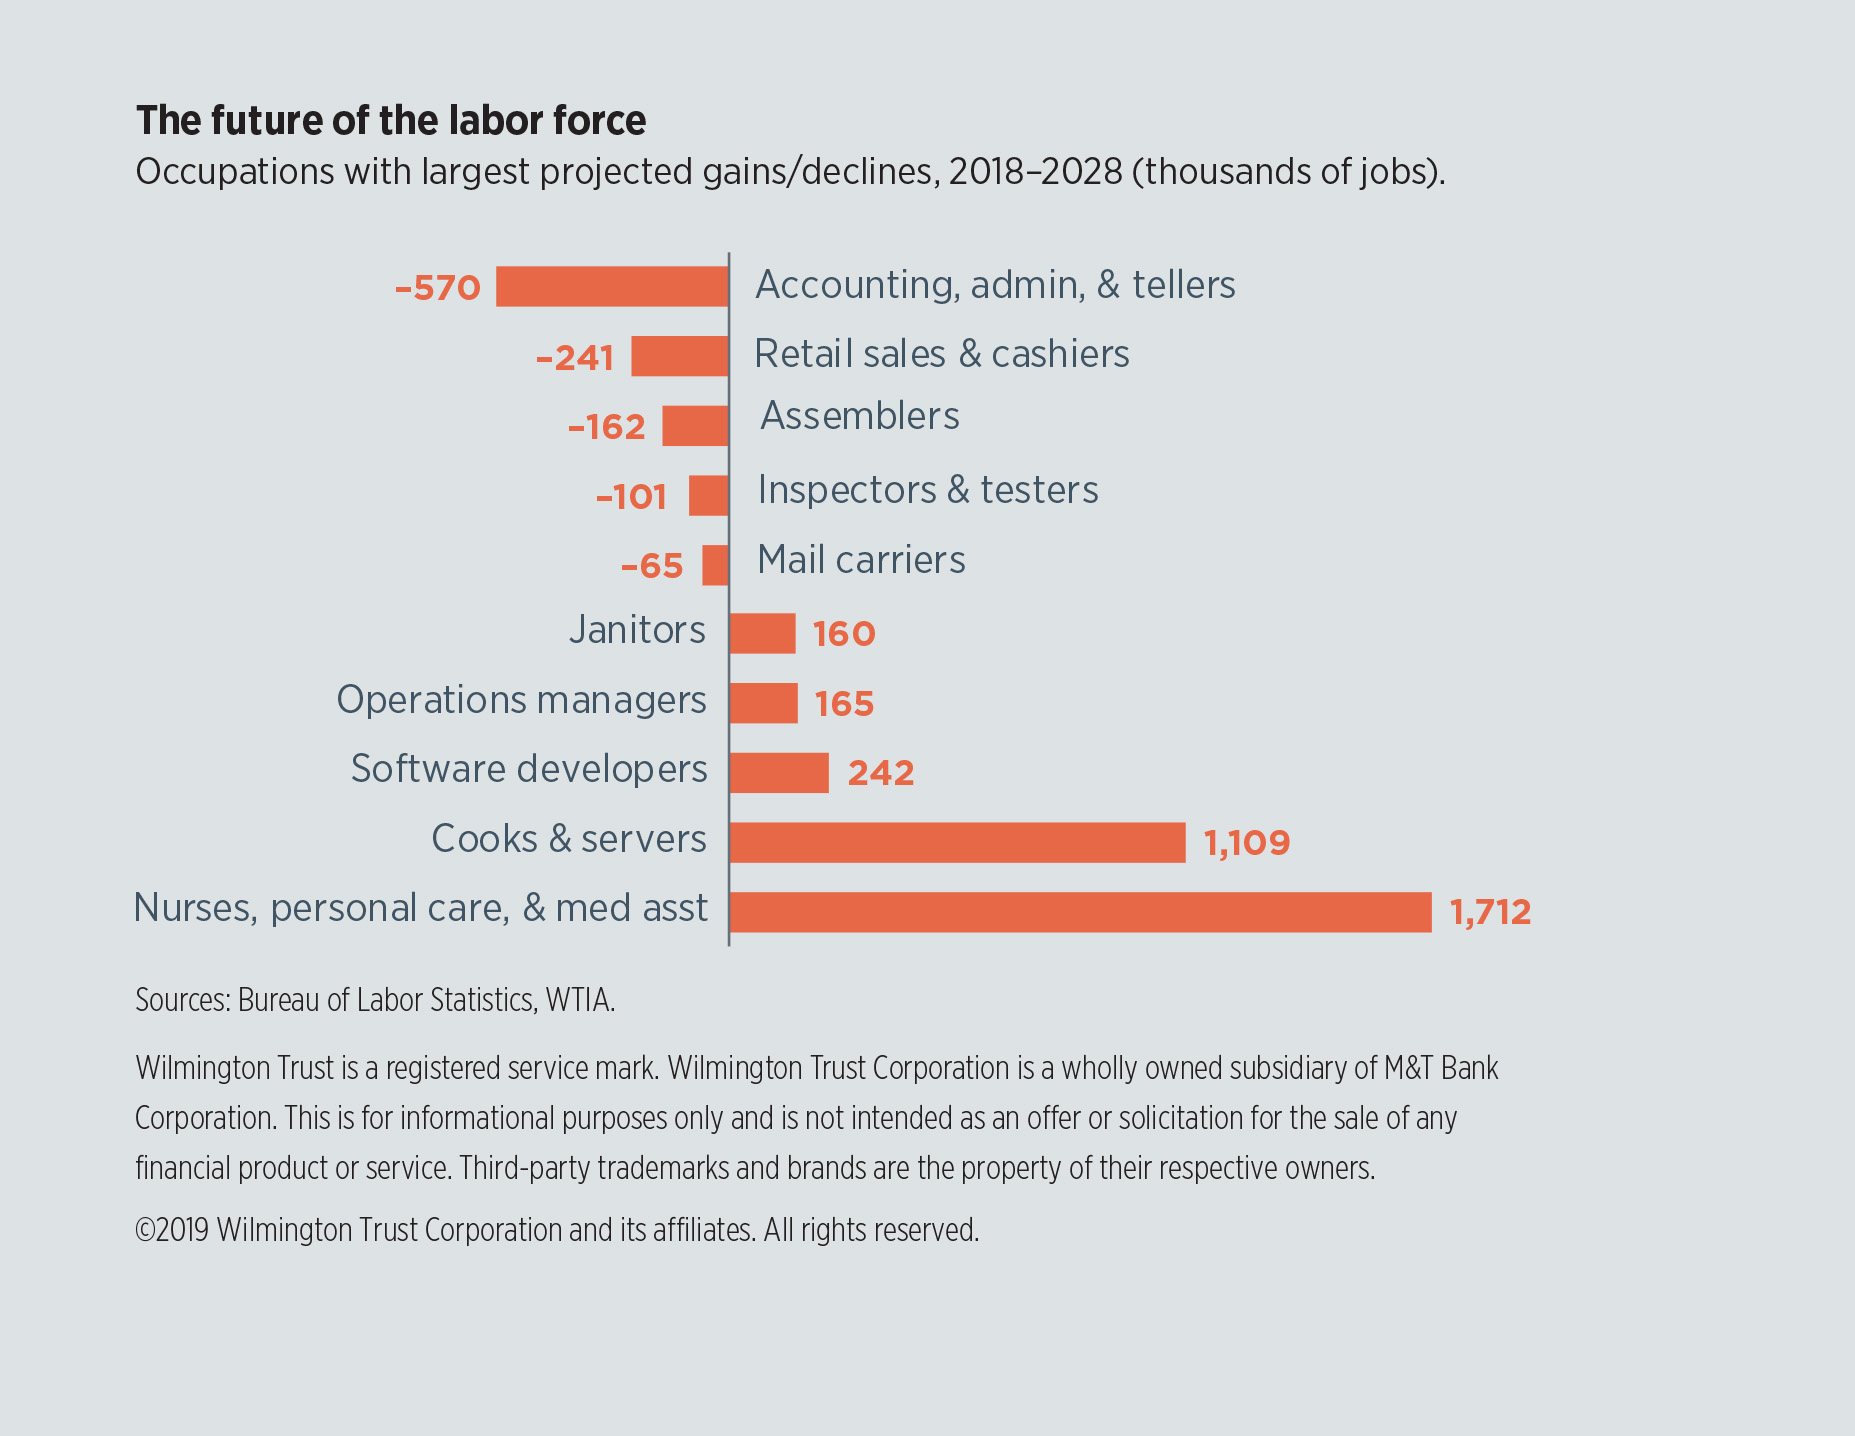 The future of the labor force